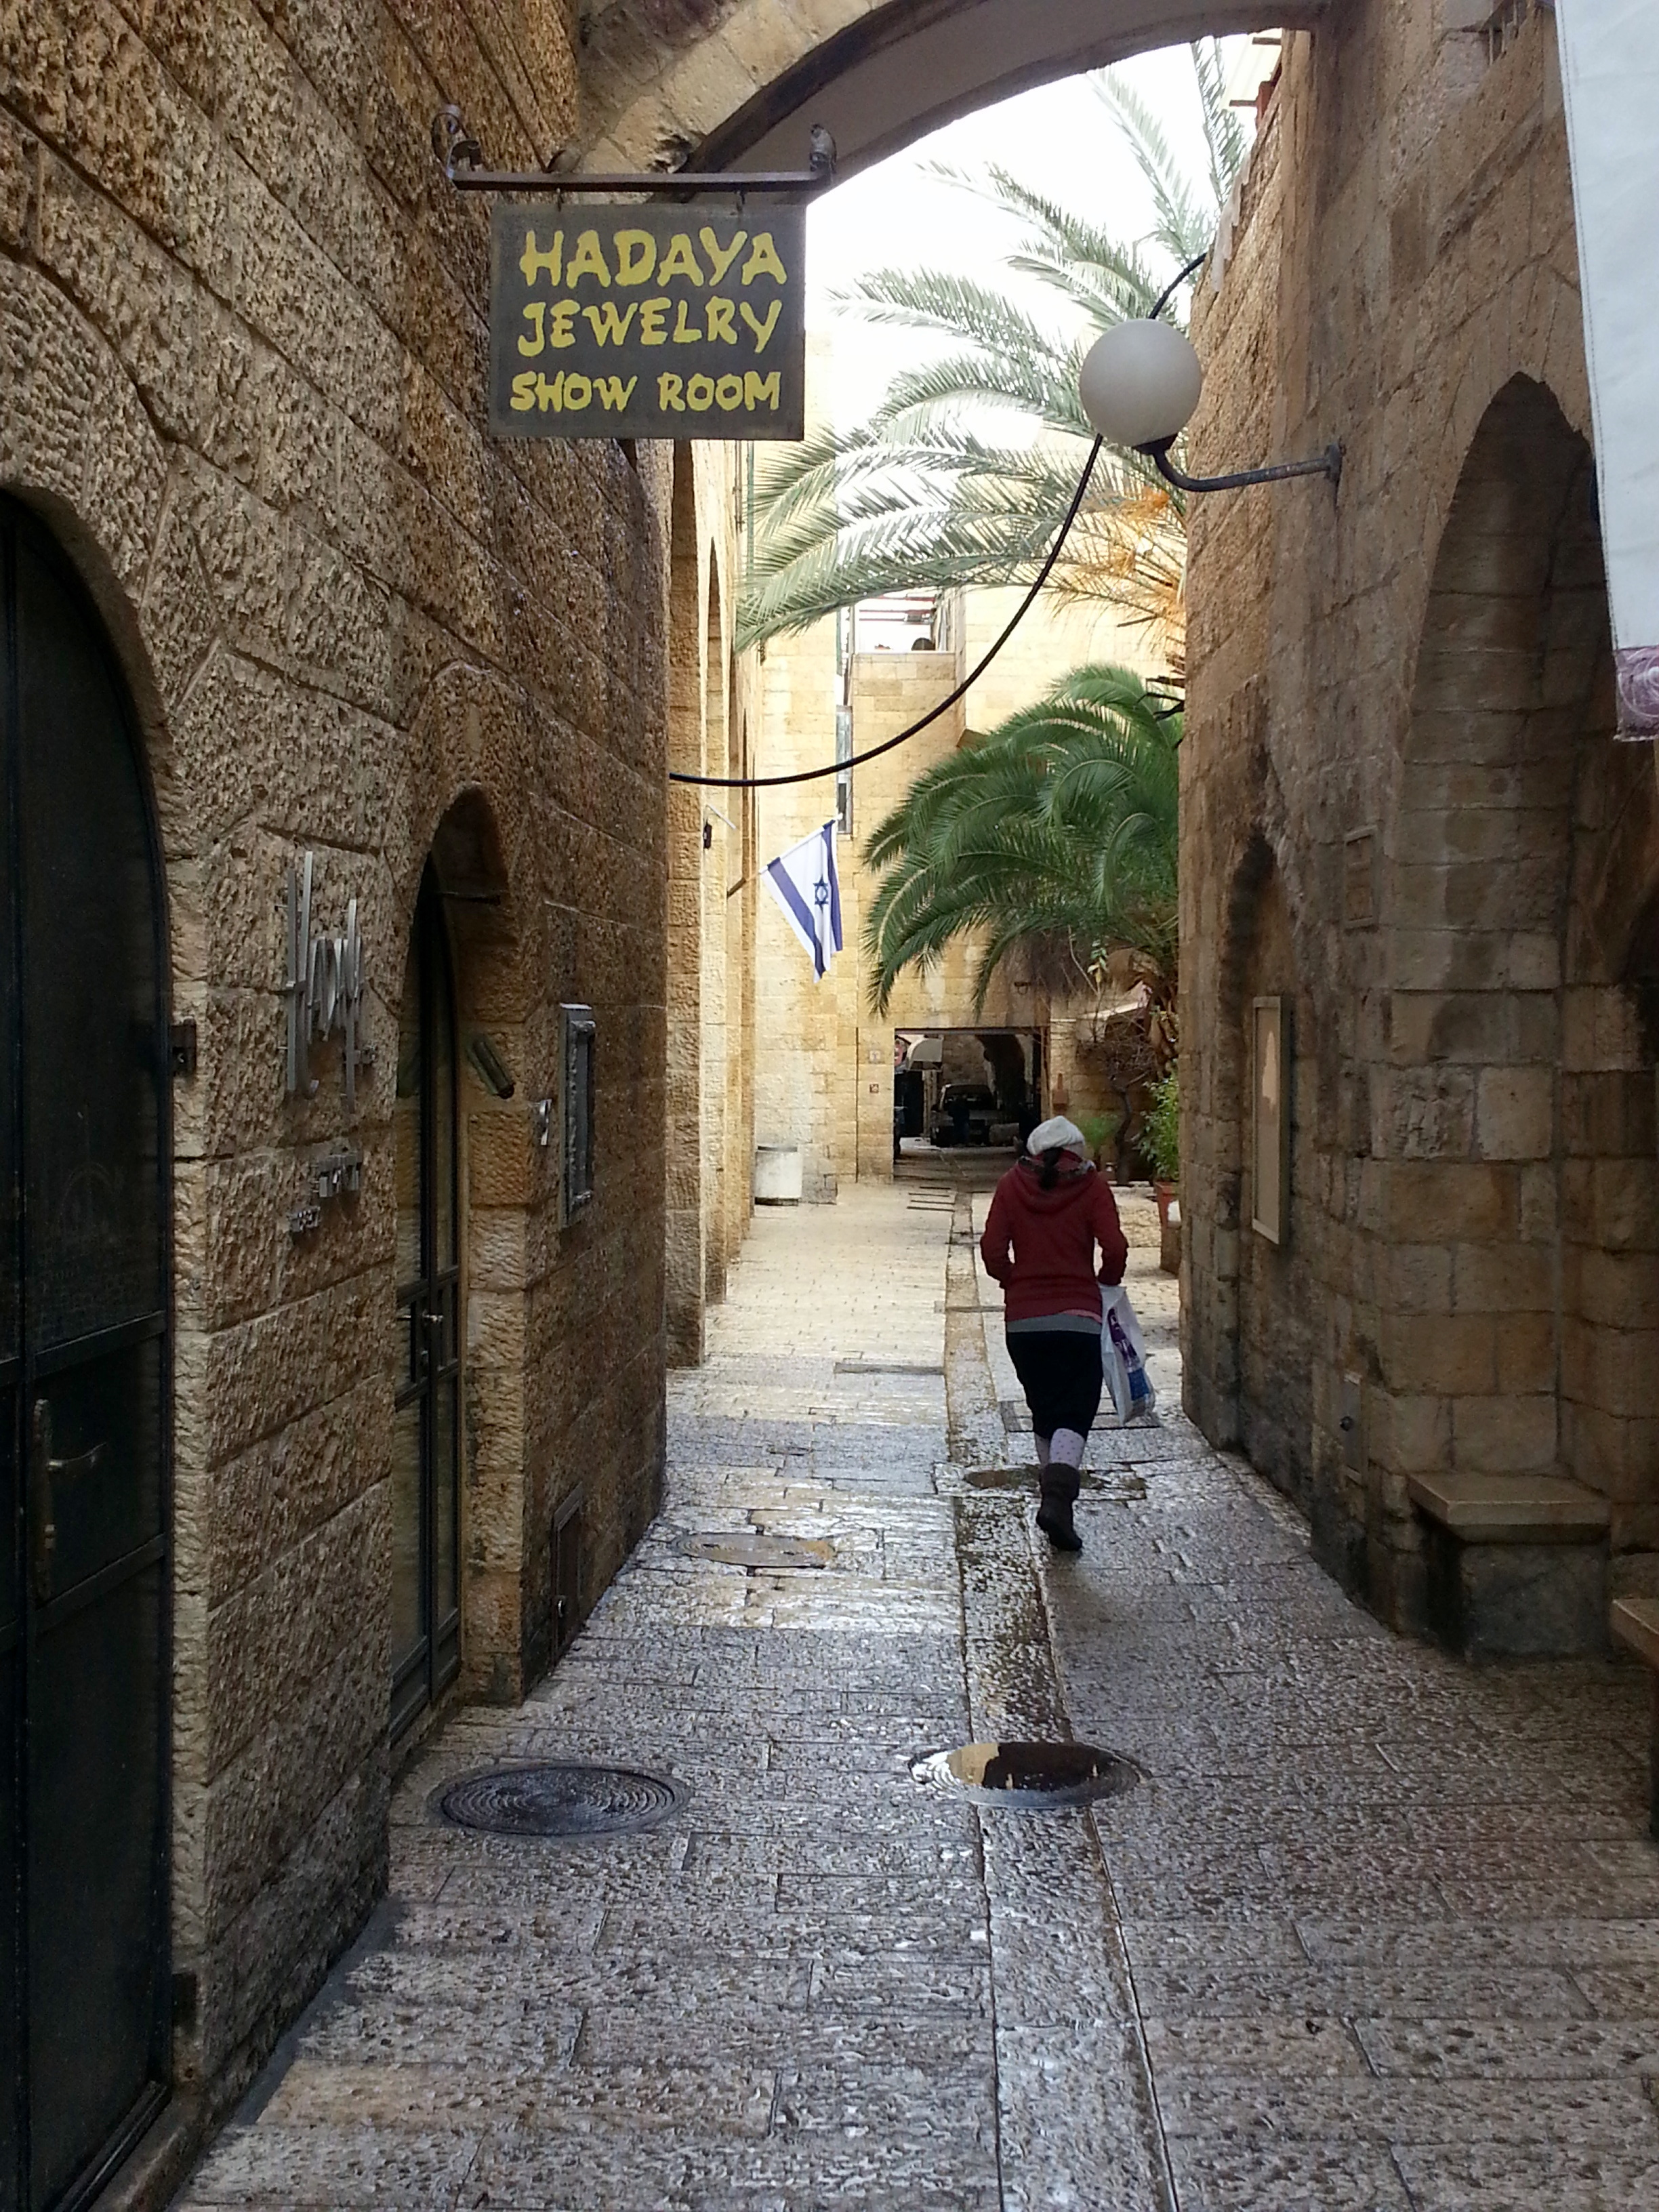 File:Old Jerusalem, Jewish Quarter road, Hadaya Jewelry 2013.jpg - Wikimedia ...